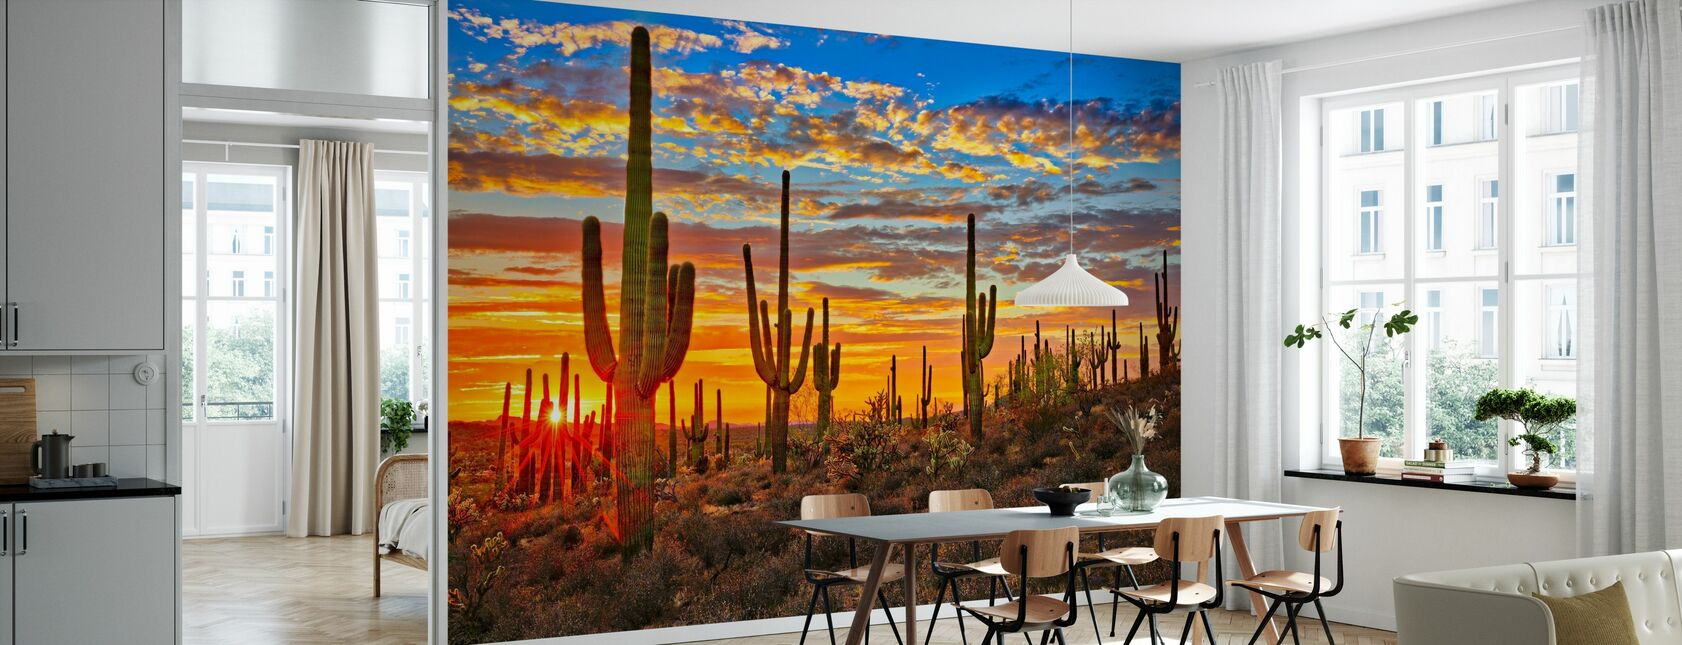 Sunset Desert - Wallpaper - Kitchen